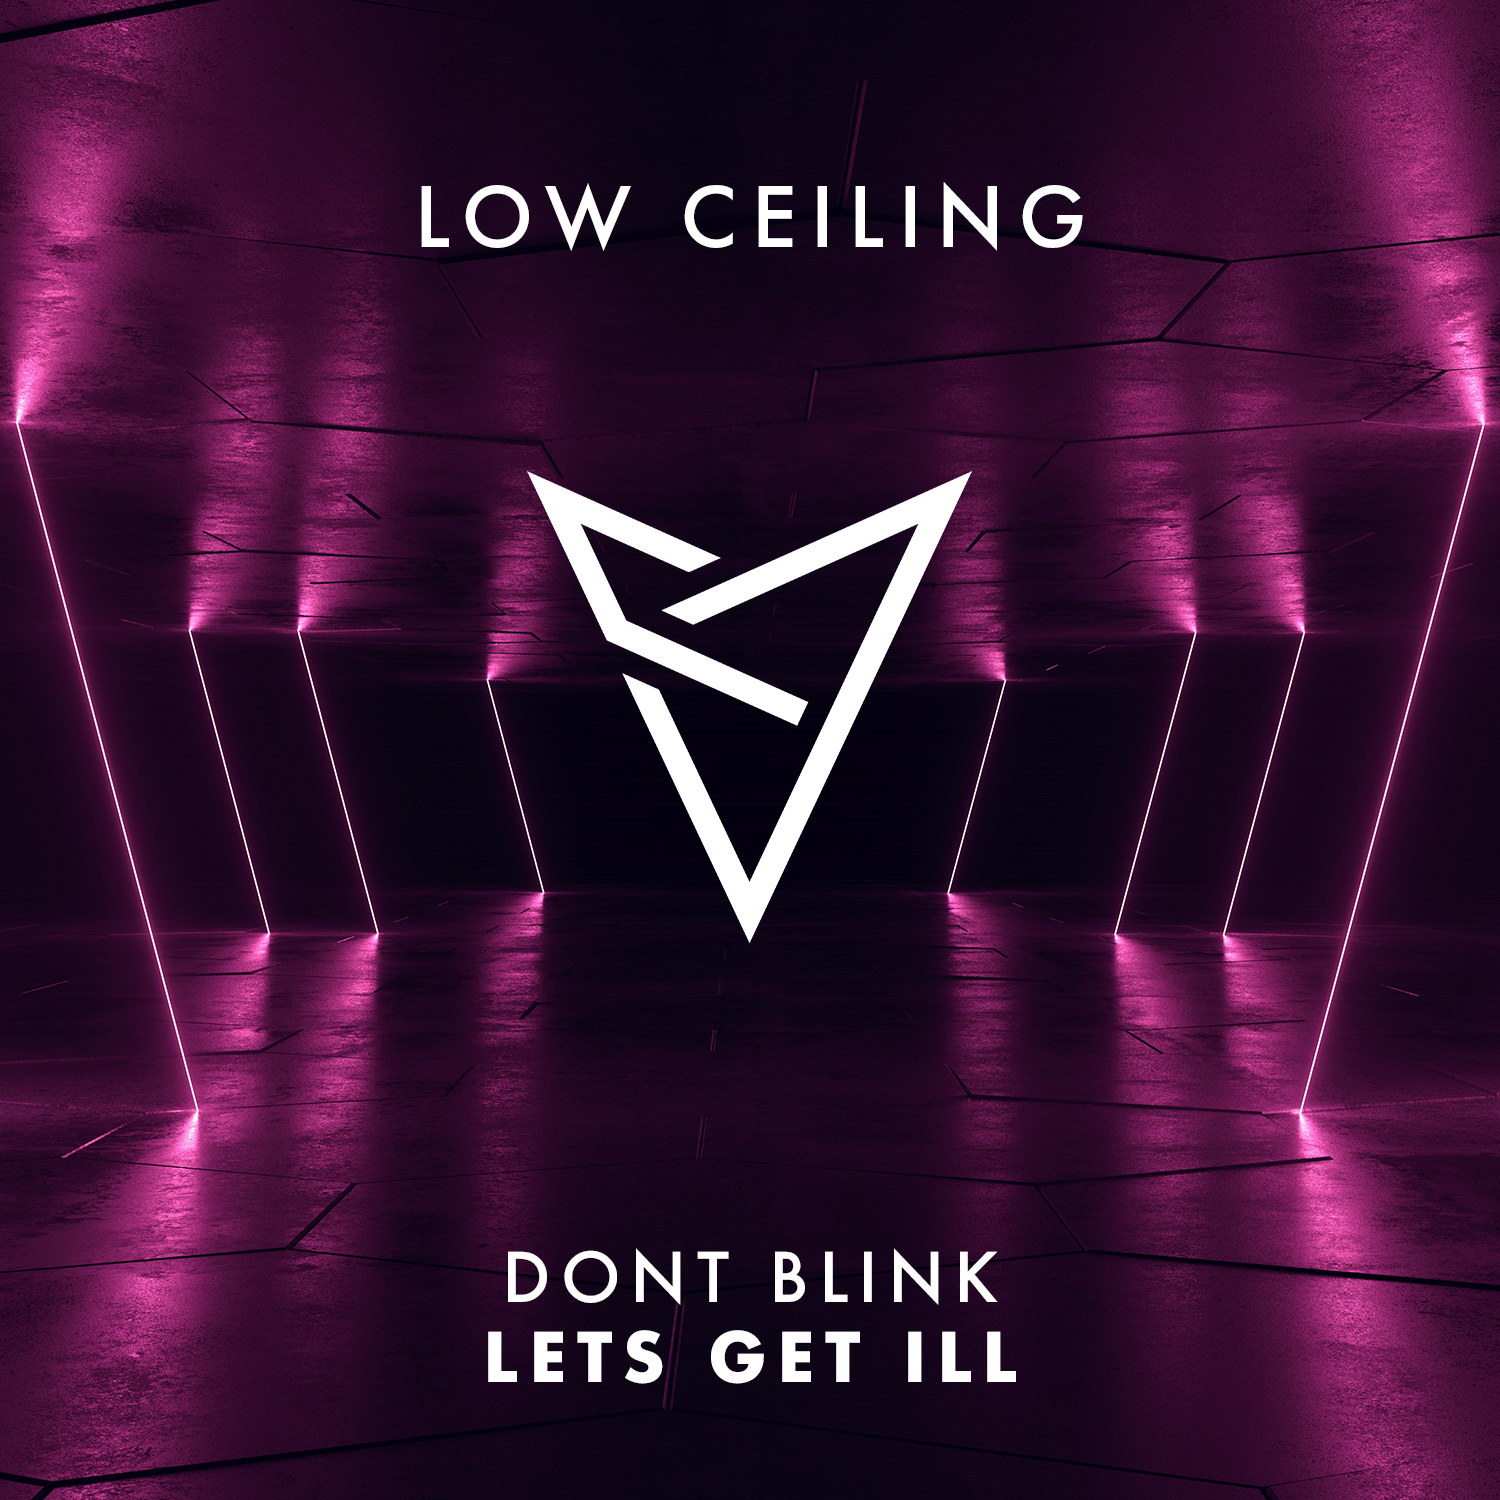 DONT BLINK - LETS GET ILL